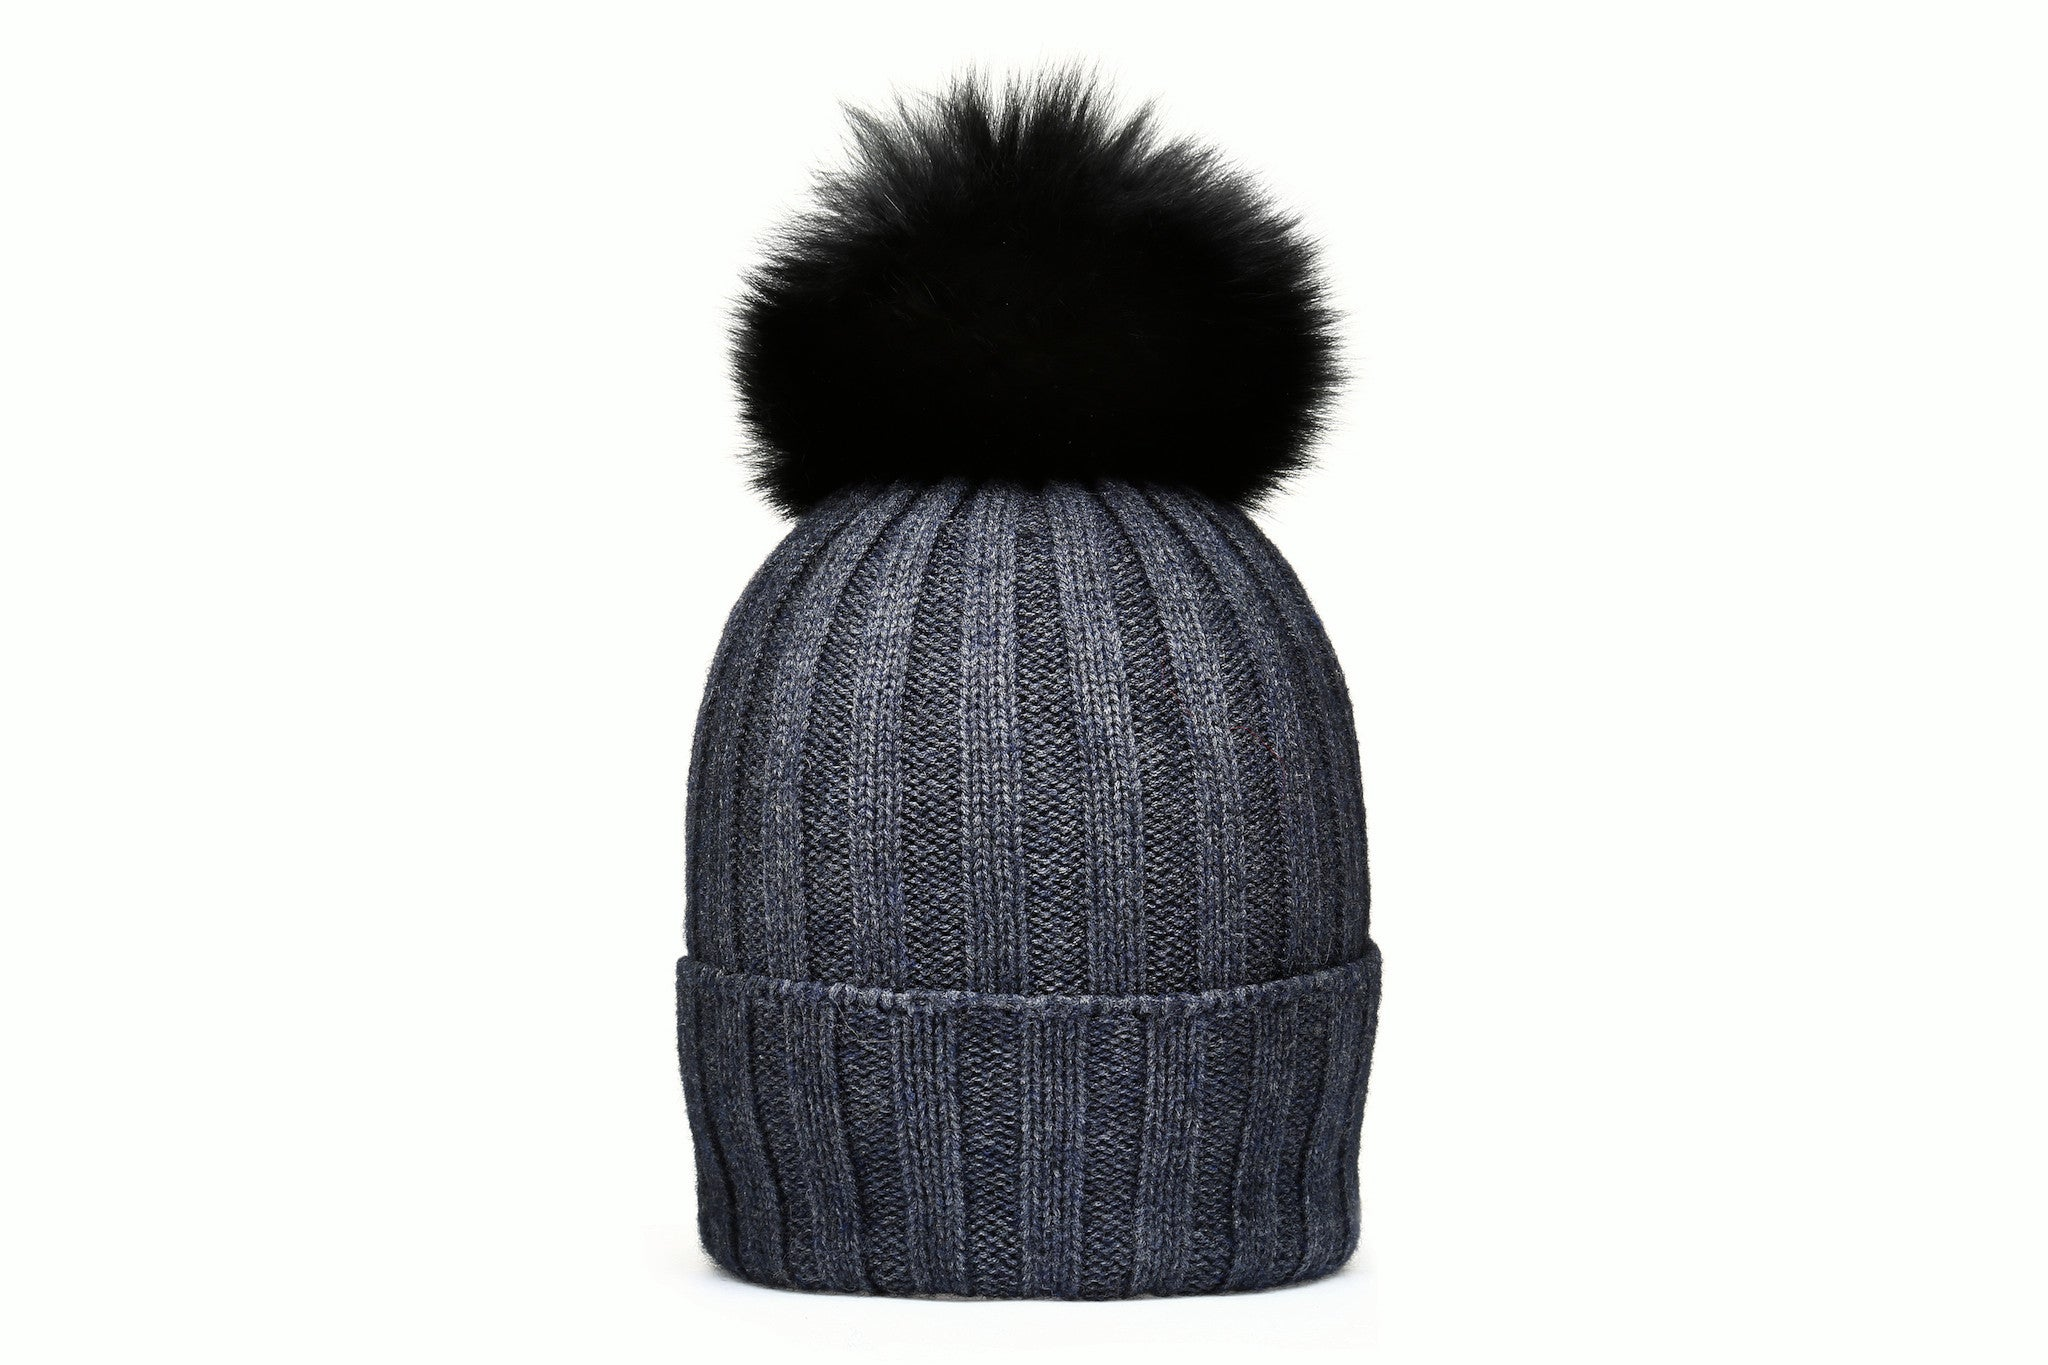 CHESTER Charcoal Beanie | Black Pompon